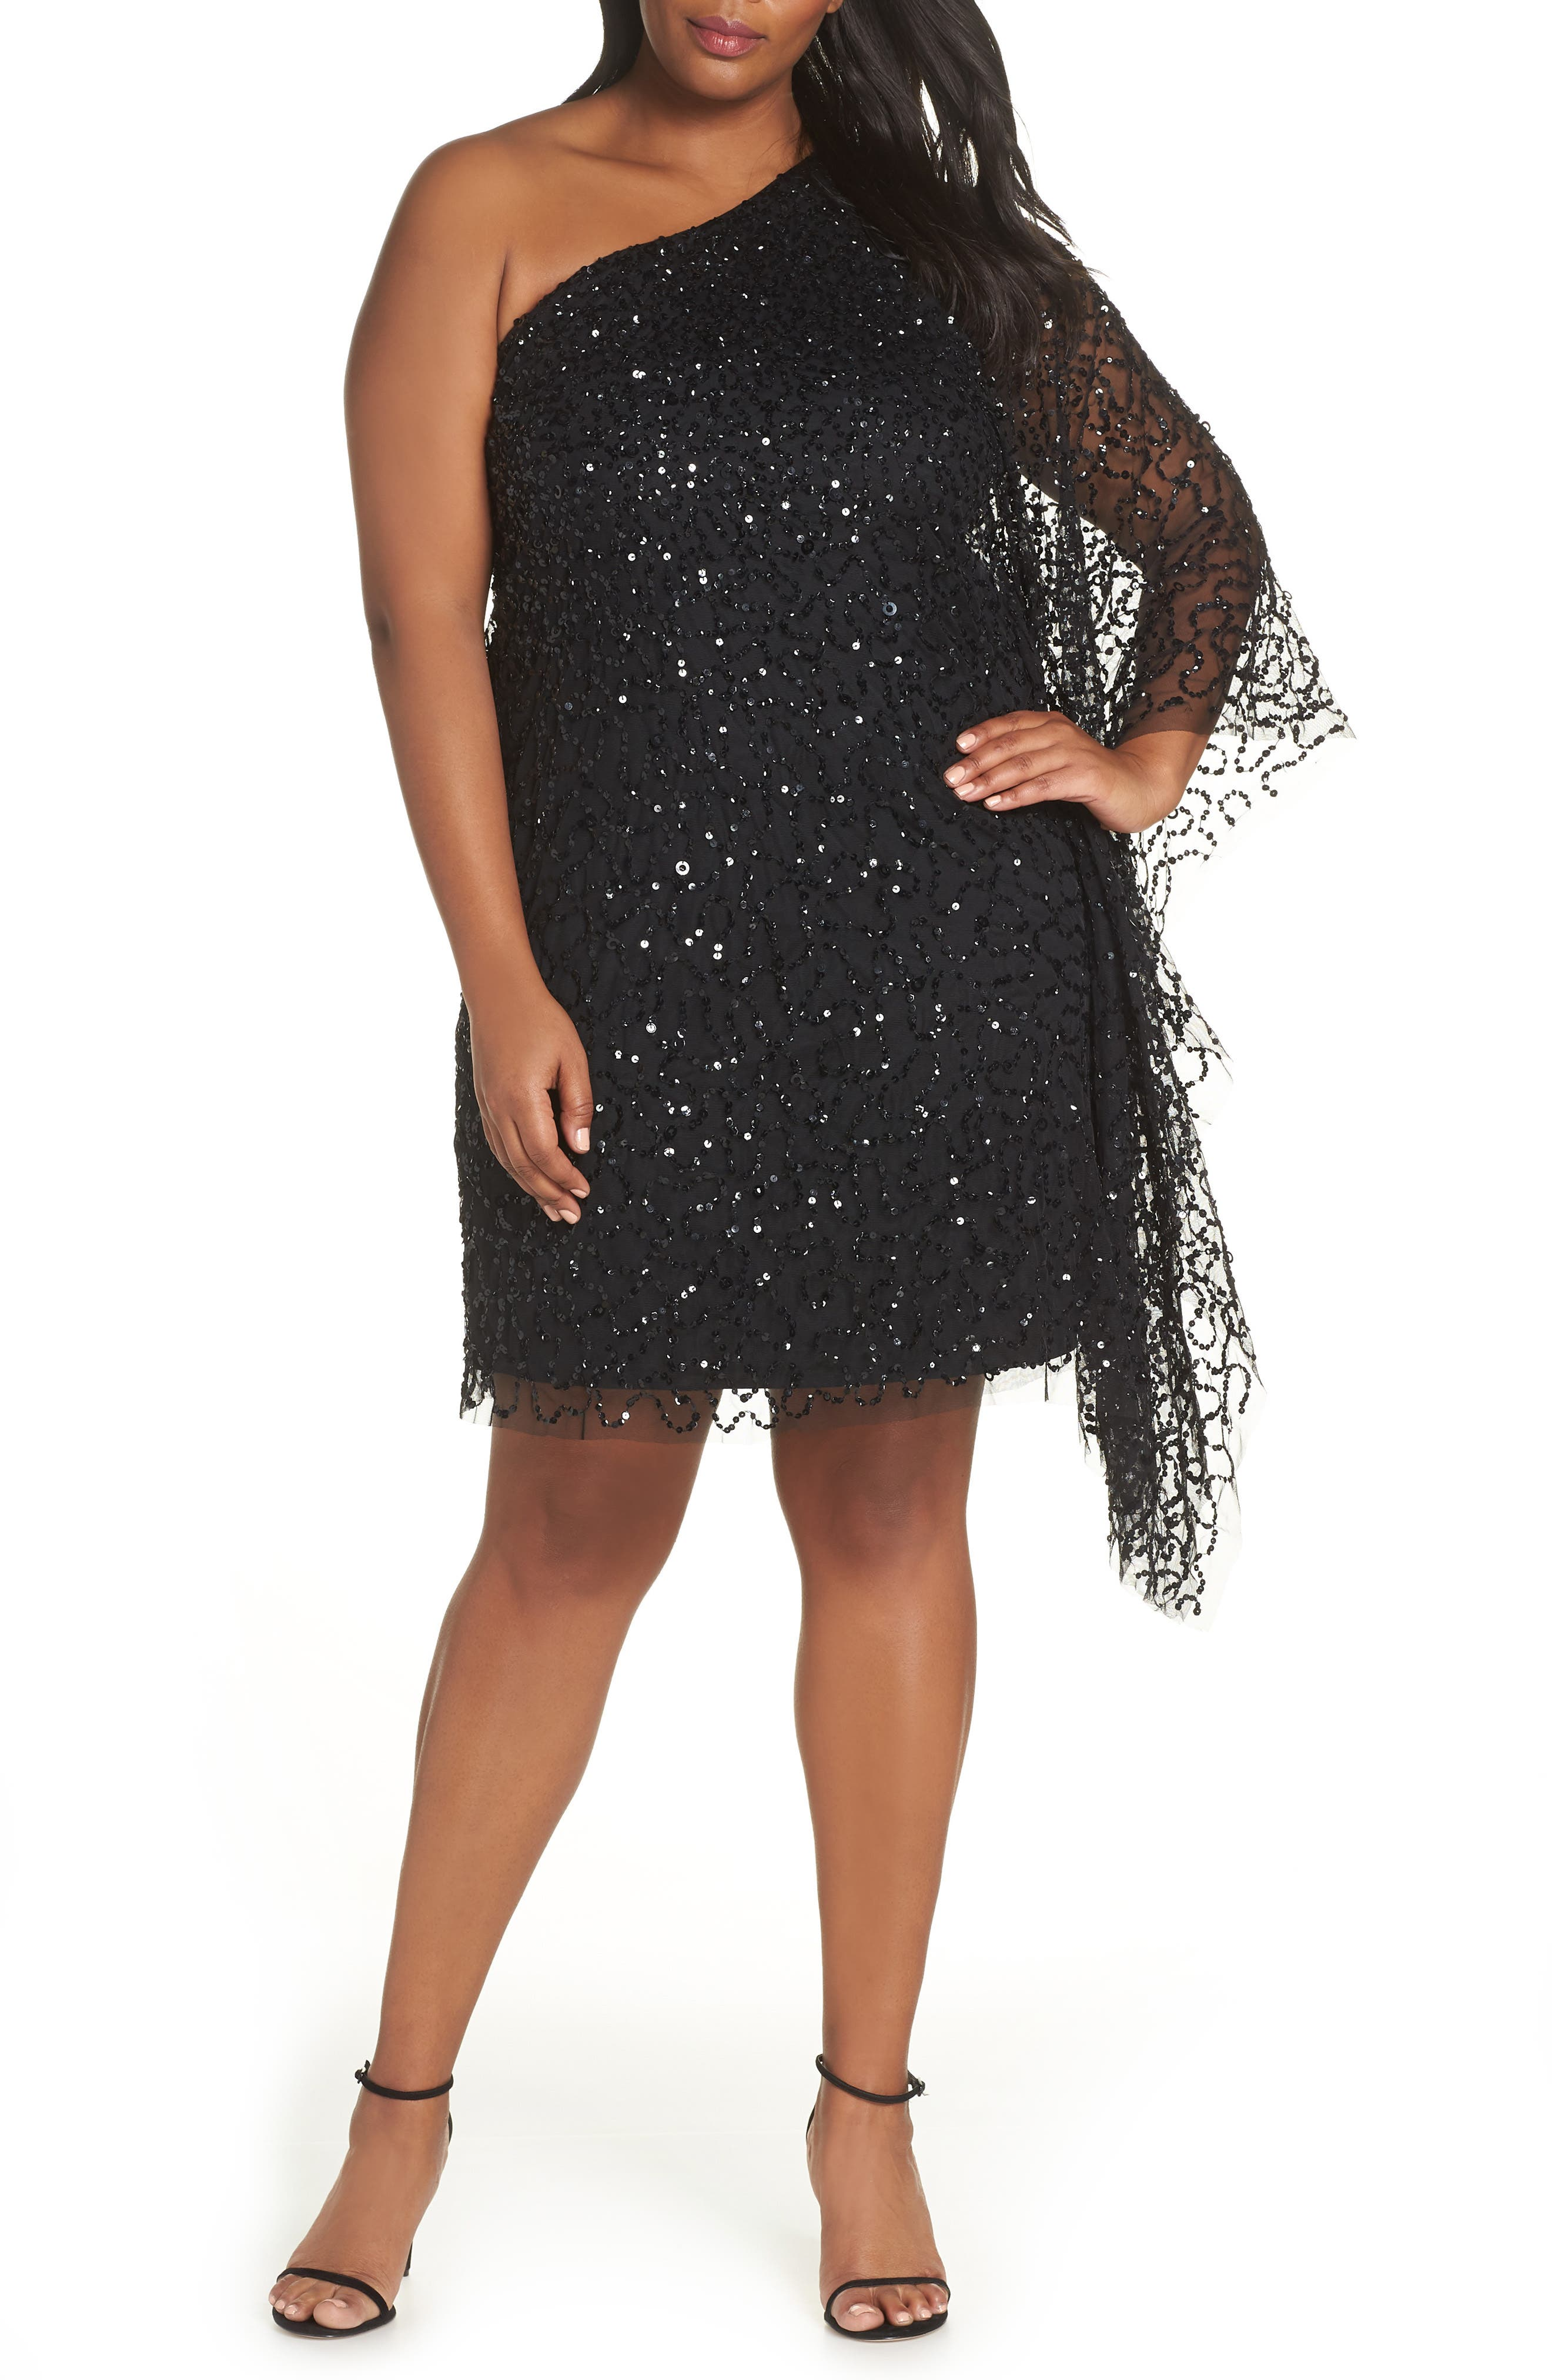 Plus Size Adrianna Papell Beaded One-Shoulder Sheath Dress, Black